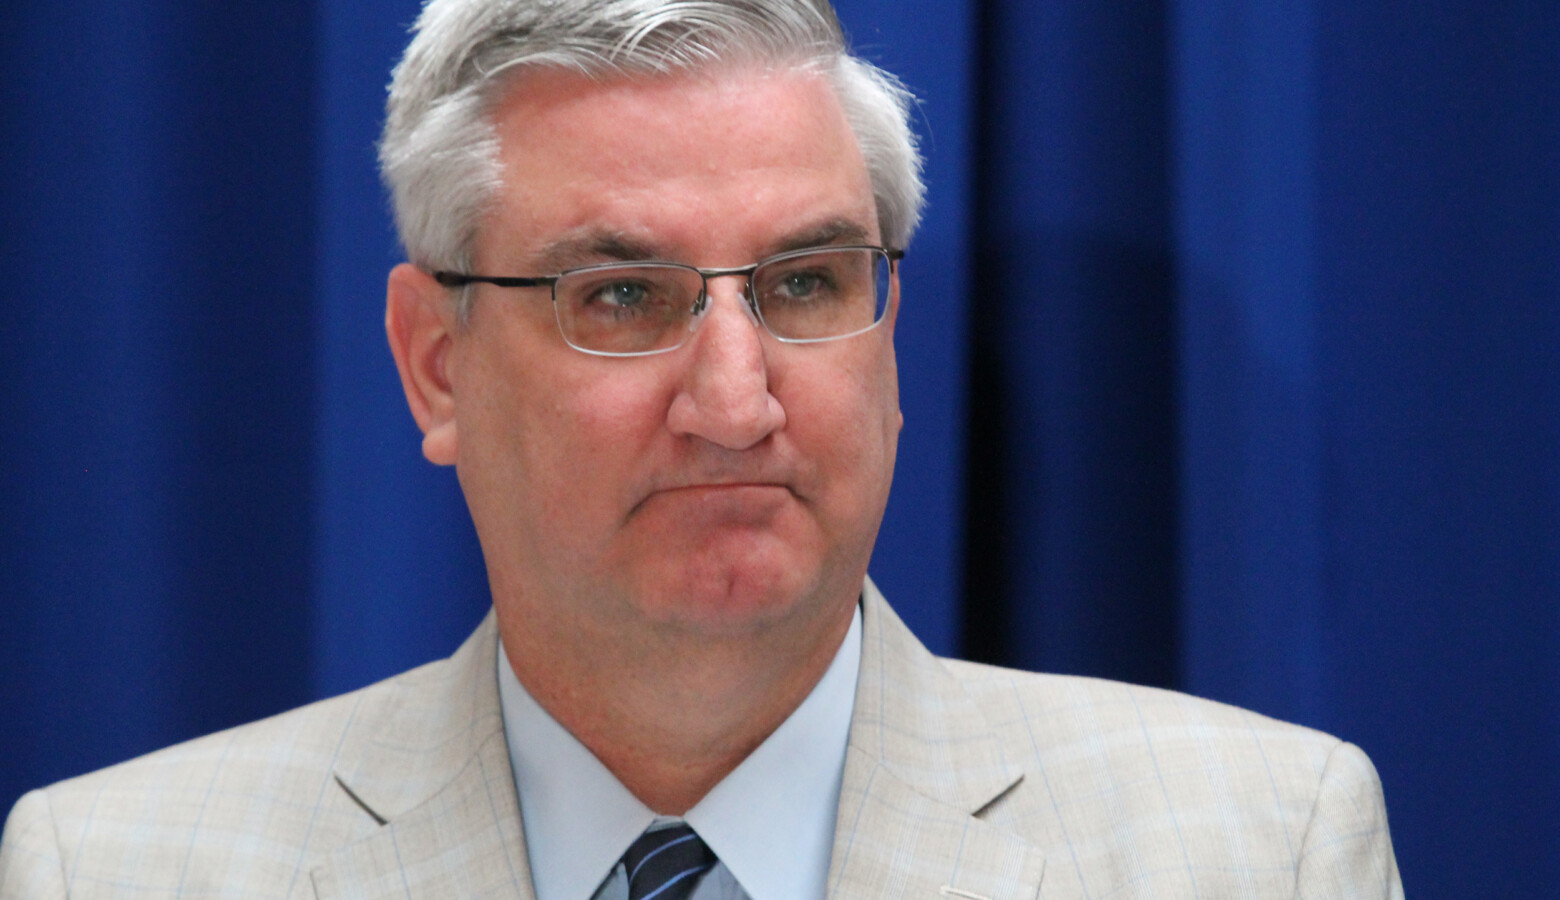 Several bills on the move during the 2021 legislative session are reactions to executive orders issued by Gov. Eric Holcomb during the COVID-19 pandemic. (Lauren Chapman/IPB News)